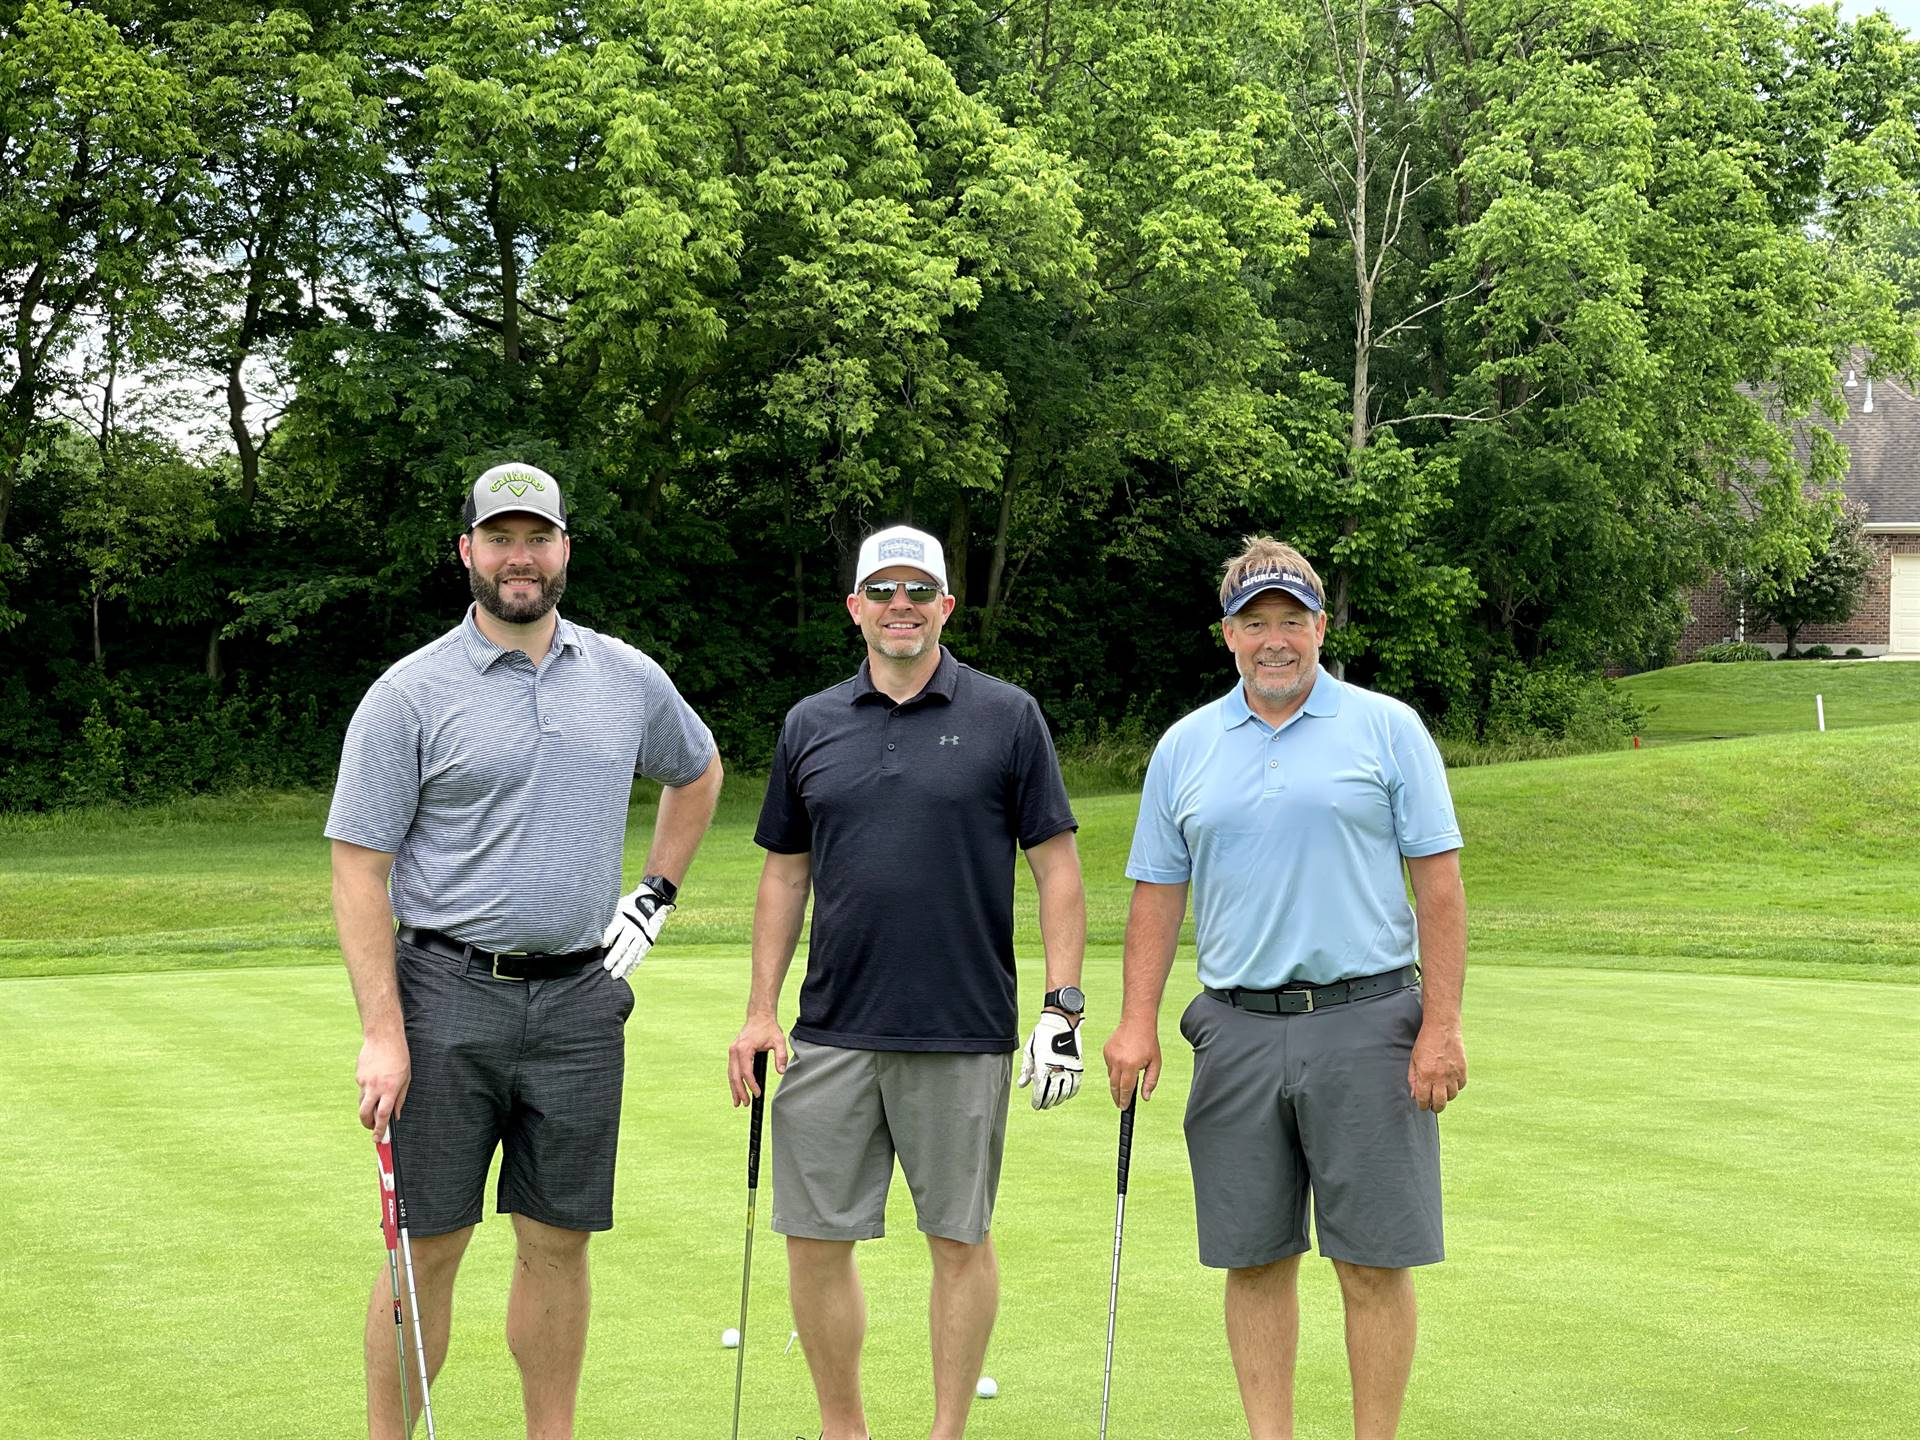 Golf outing team